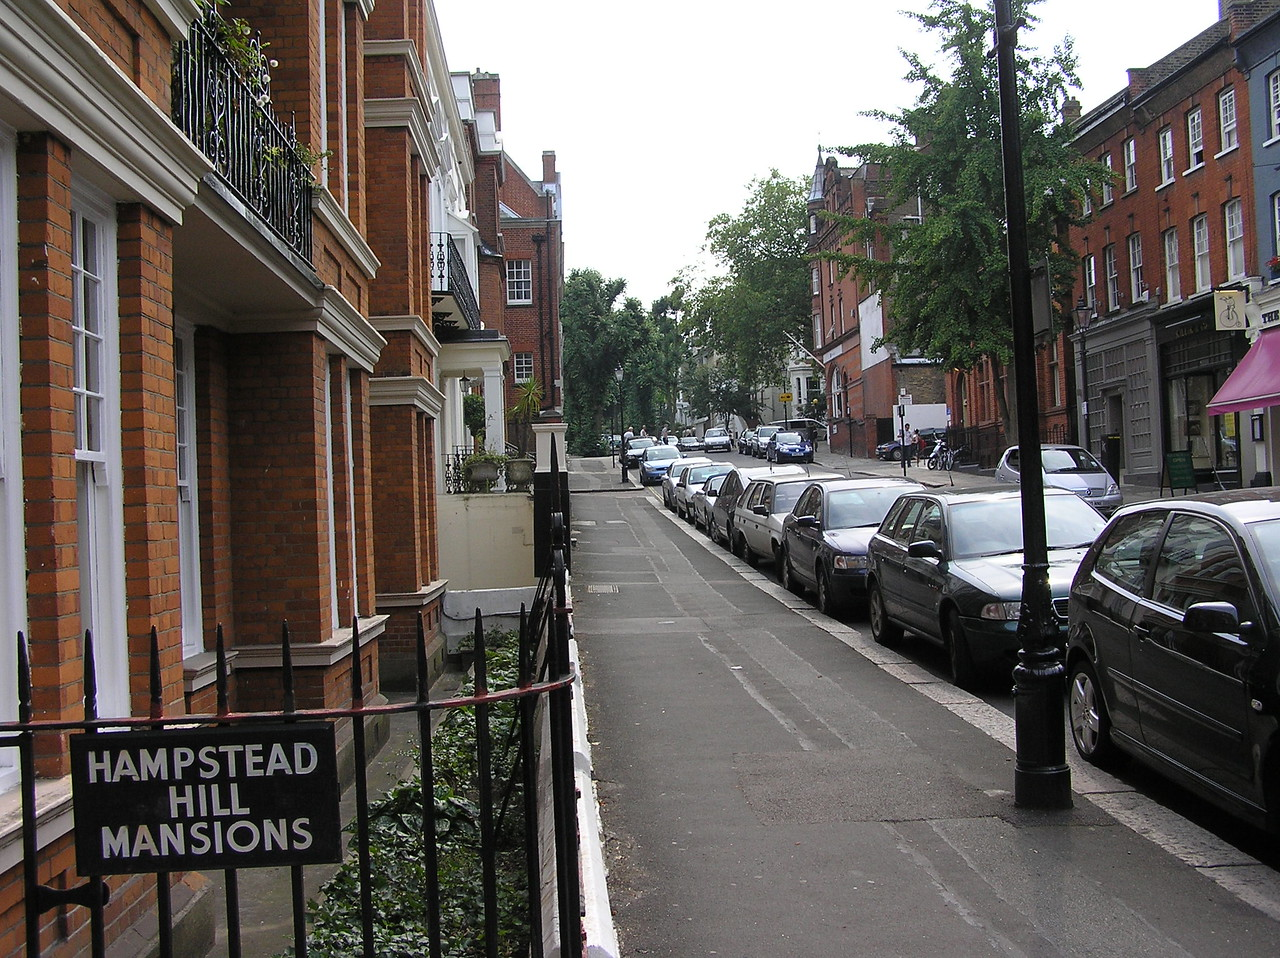 Looking back up towards Hampstead's high street, Jim Henson's house can be seen among the other Hampstead Hill mansions. It is the white one peeking out on the left.